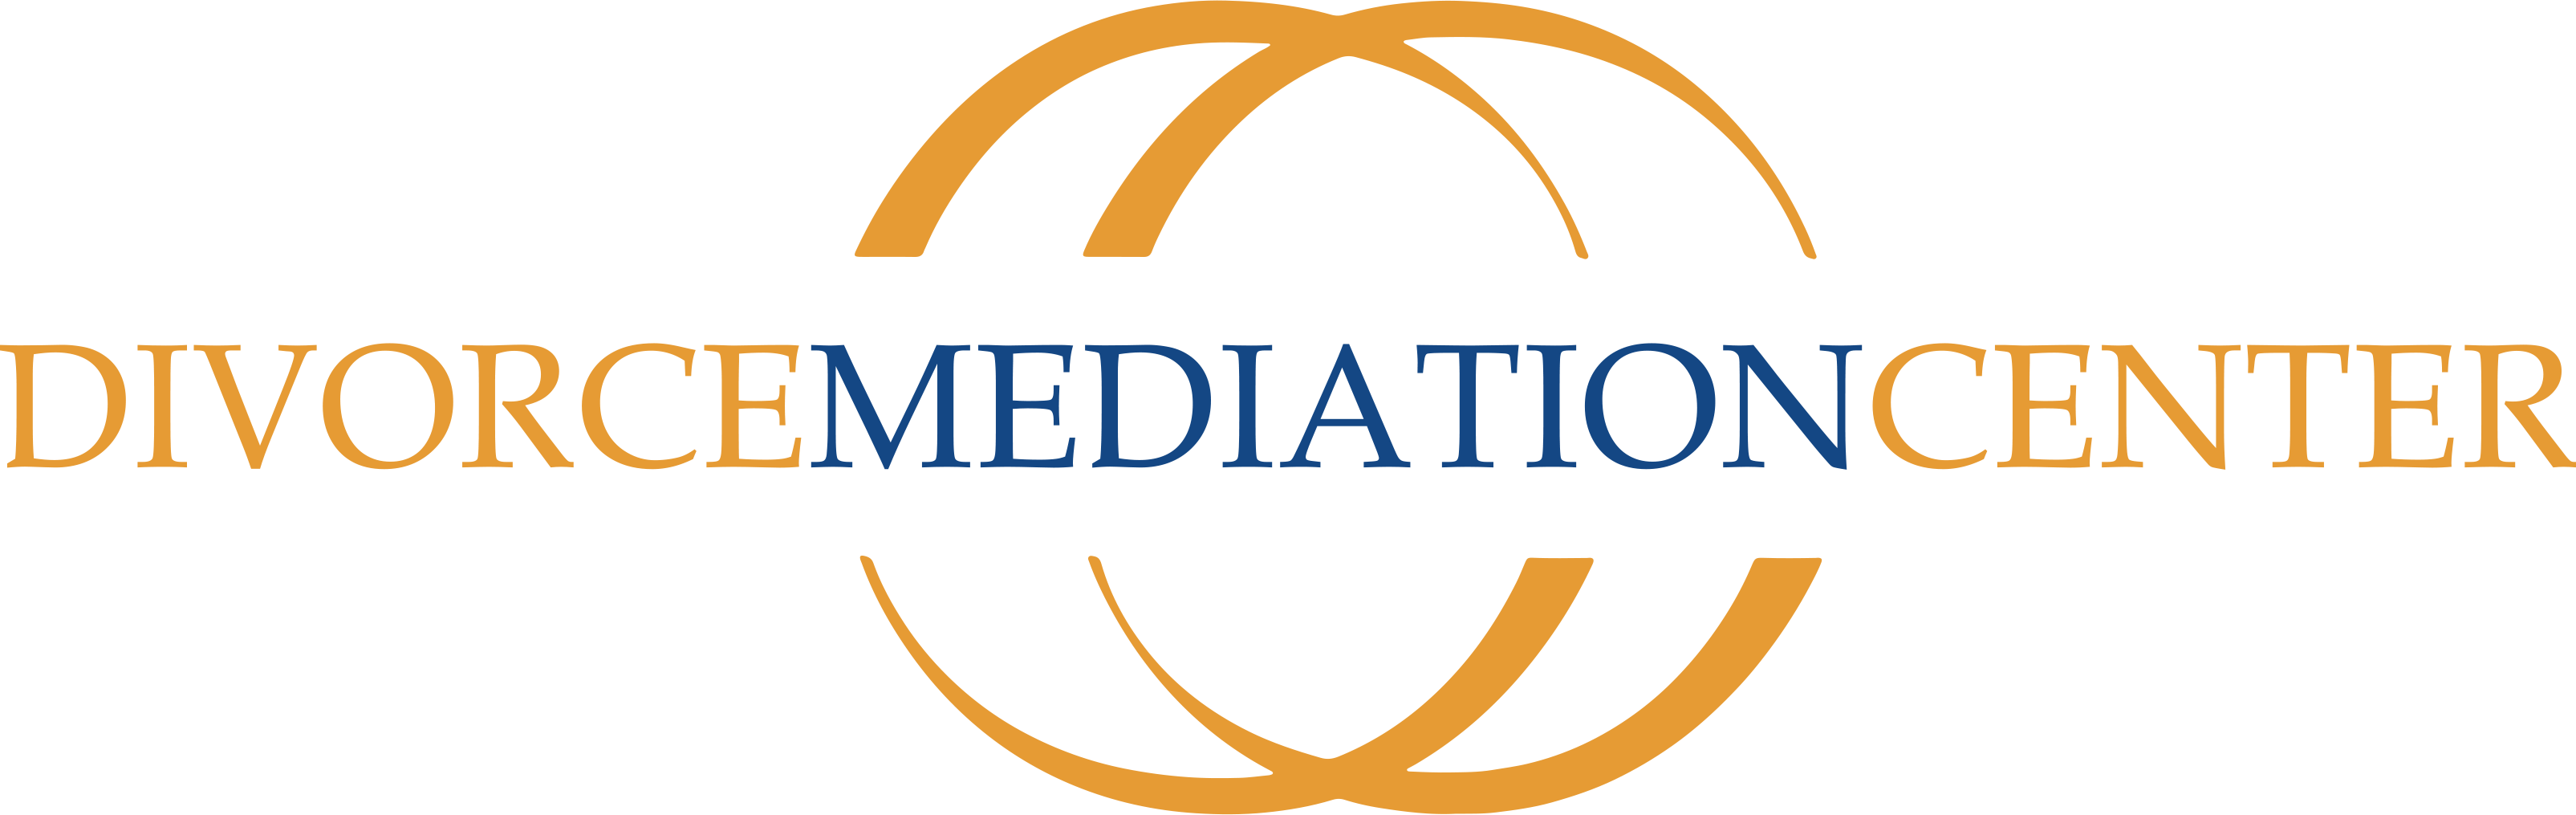 Divorce and mediation center affordable palm beach divorce and divorce and mediation solutioingenieria Choice Image